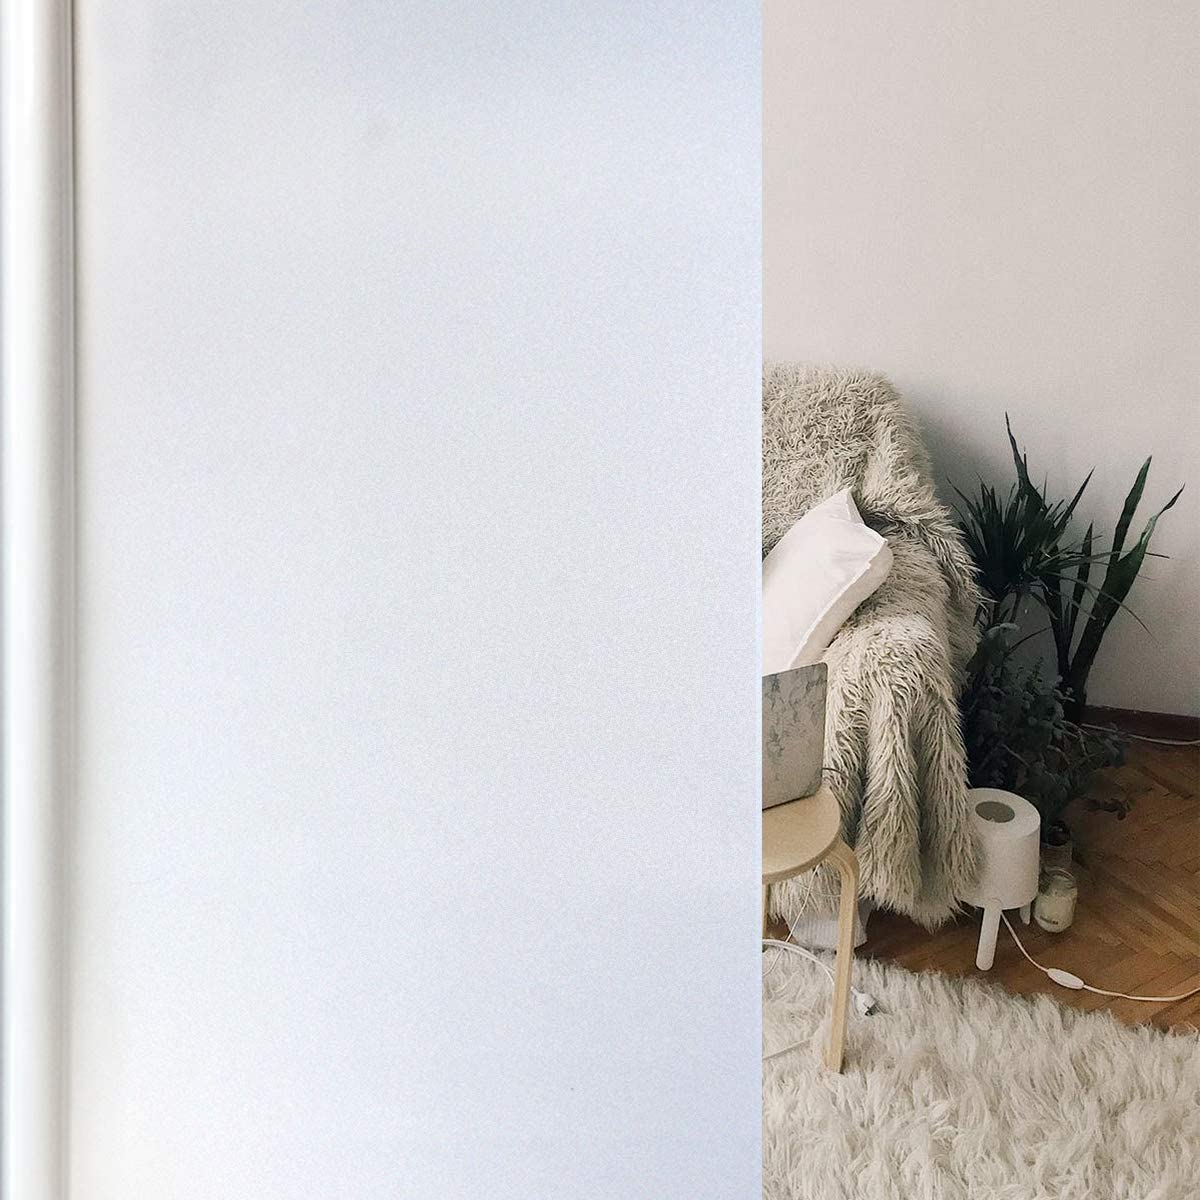 EVERYTHRY Window Privacy Film Frosted Max 76% OFF Sticker Static Clin Ranking TOP20